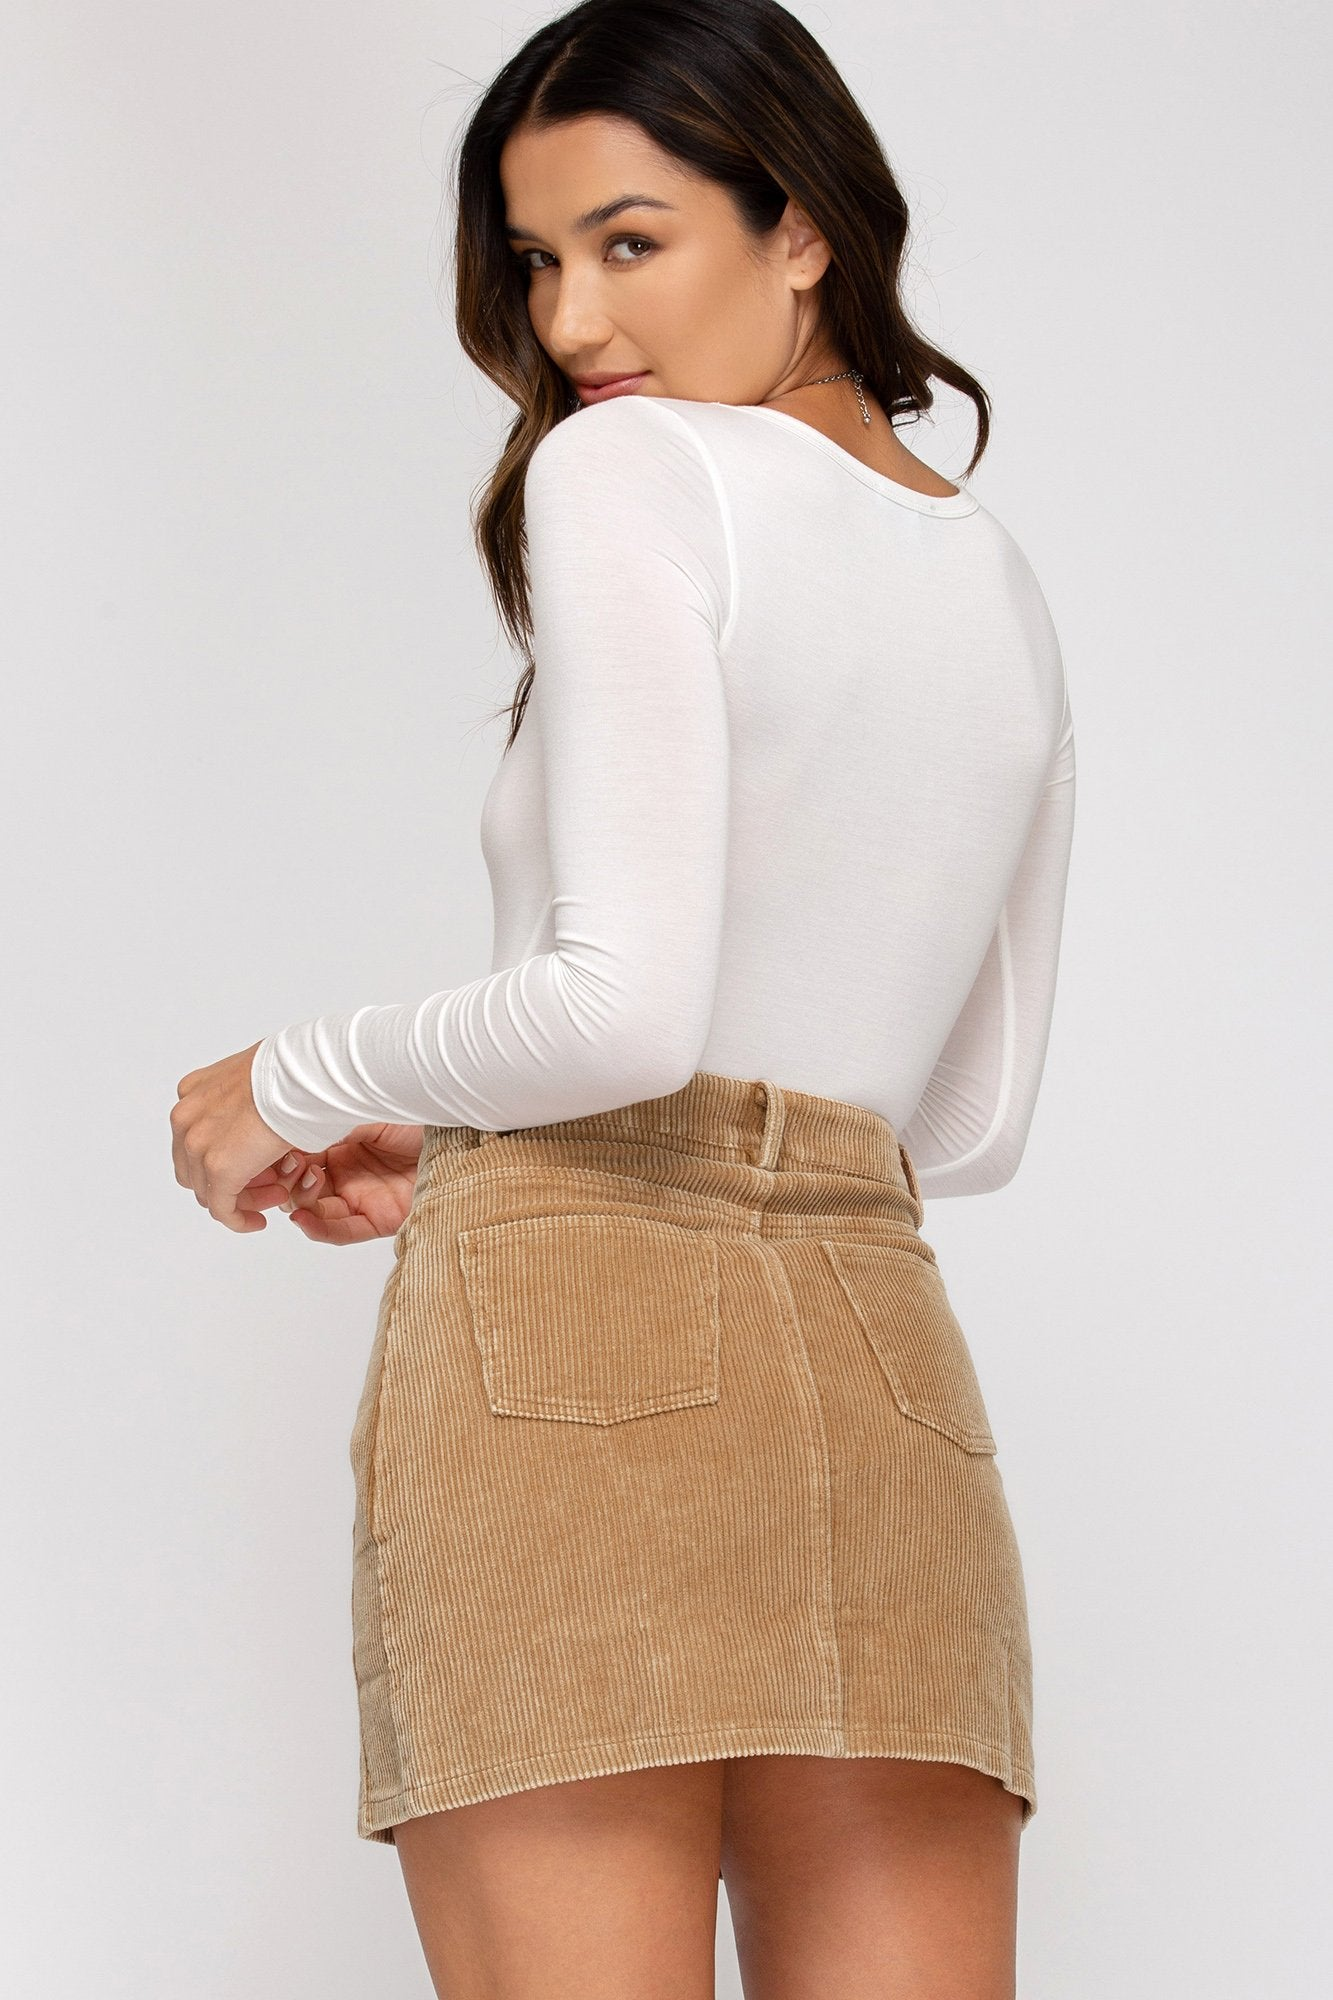 SHE AND SKY Women's Skirts Washed Corduroy Mini Skirt || David's Clothing